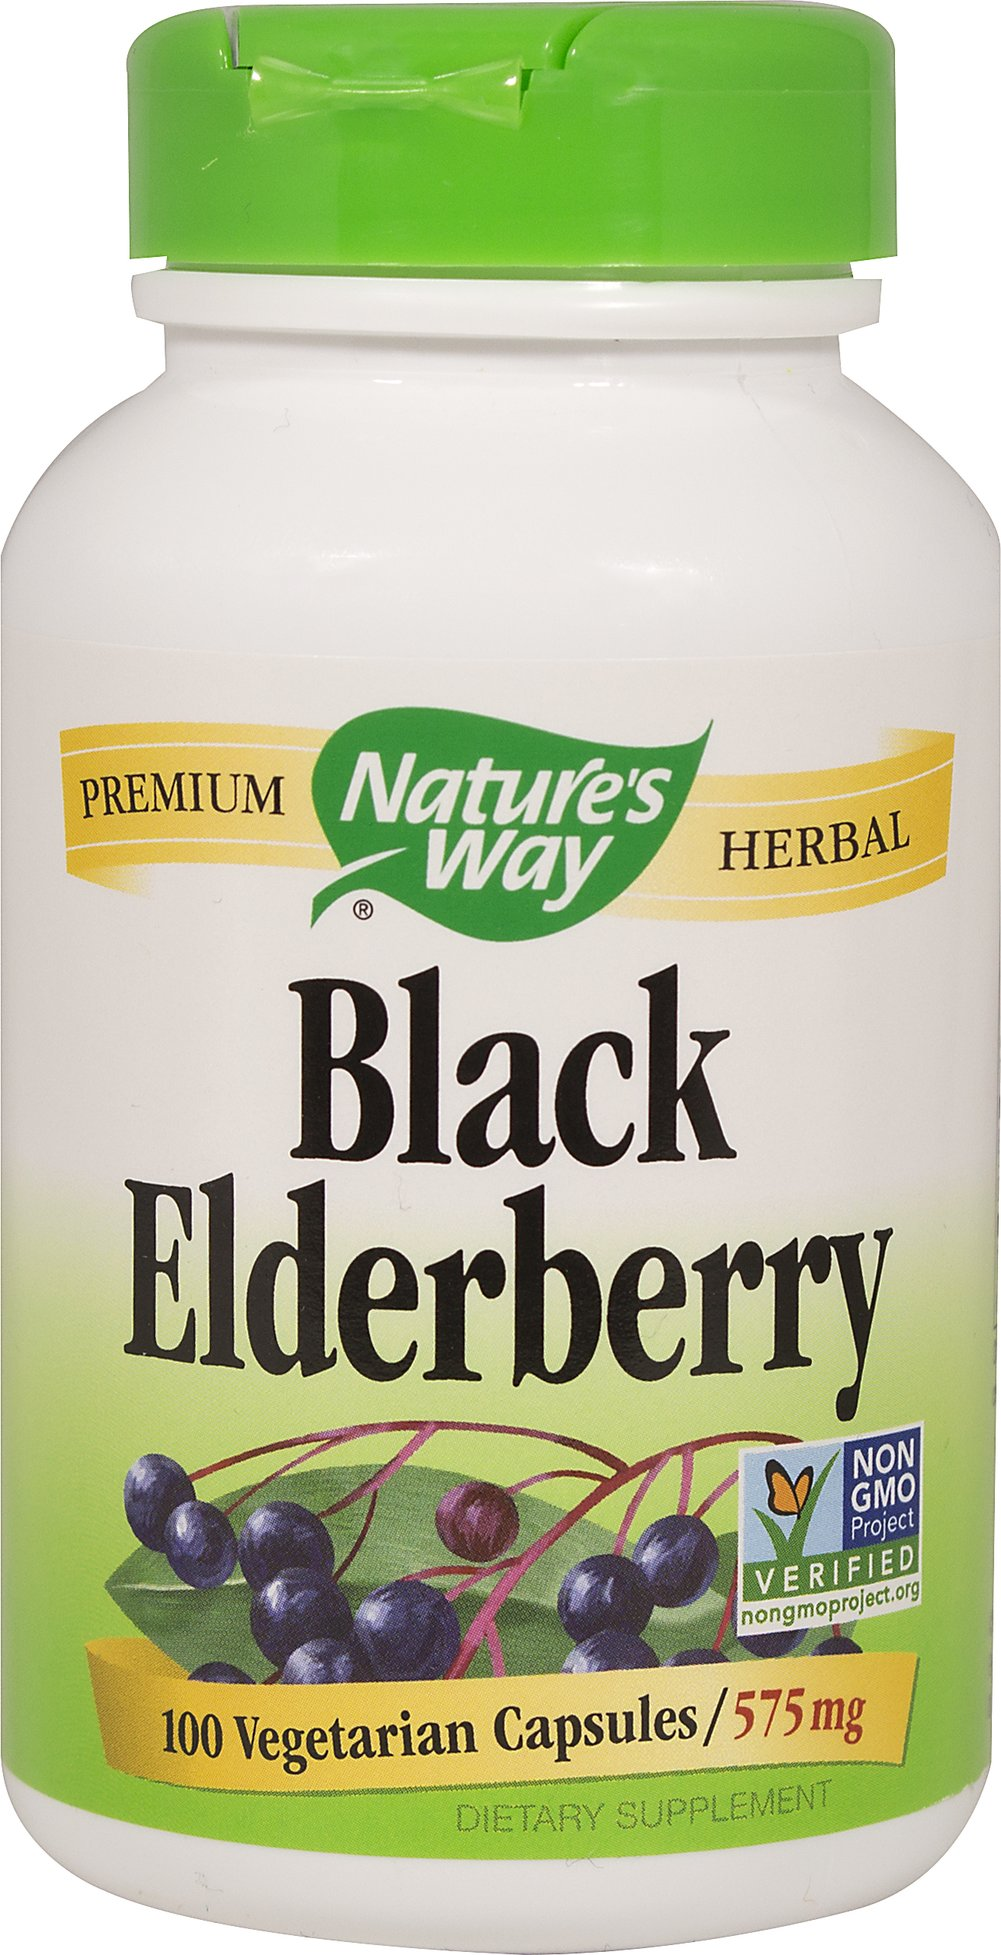 Elderberry 575 mg <p><strong>From the Manufacturer's Label:</strong></p><p>Popular in Winter<br /><br />Elderberry (Sambucus nigra) was used by Native Americans.  The berries and flowers are rich in flavonoids. <br /><br />Manufactured by Nature's Way</p> 100 Capsules 575 mg $7.19